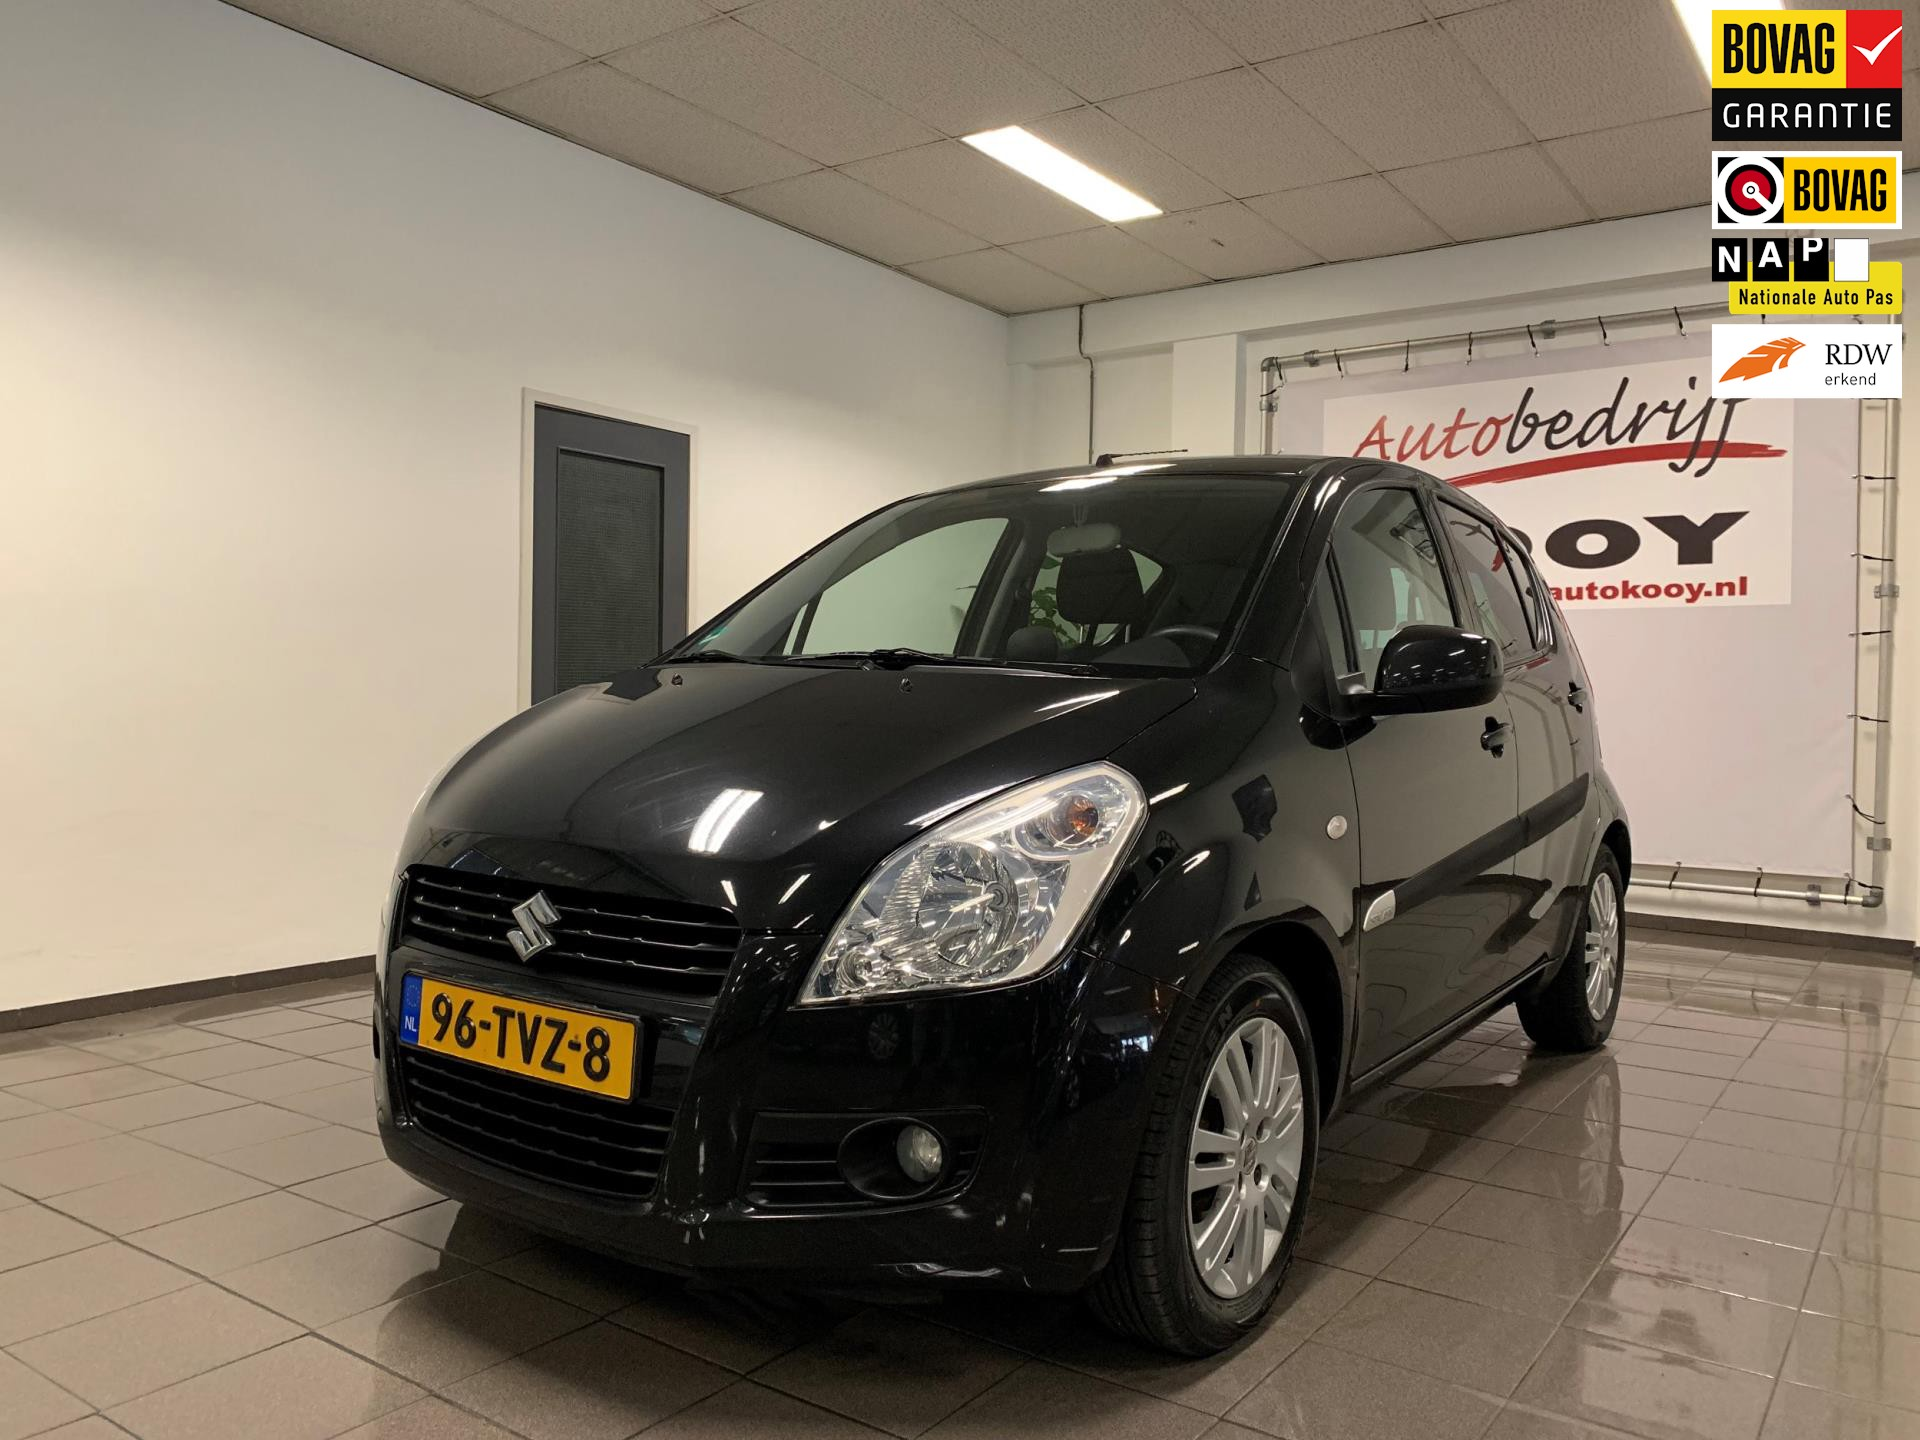 Suzuki Splash 1.0 VVT Exclusive EASSS * 1e Eig / Airco / Stoelverwarming *